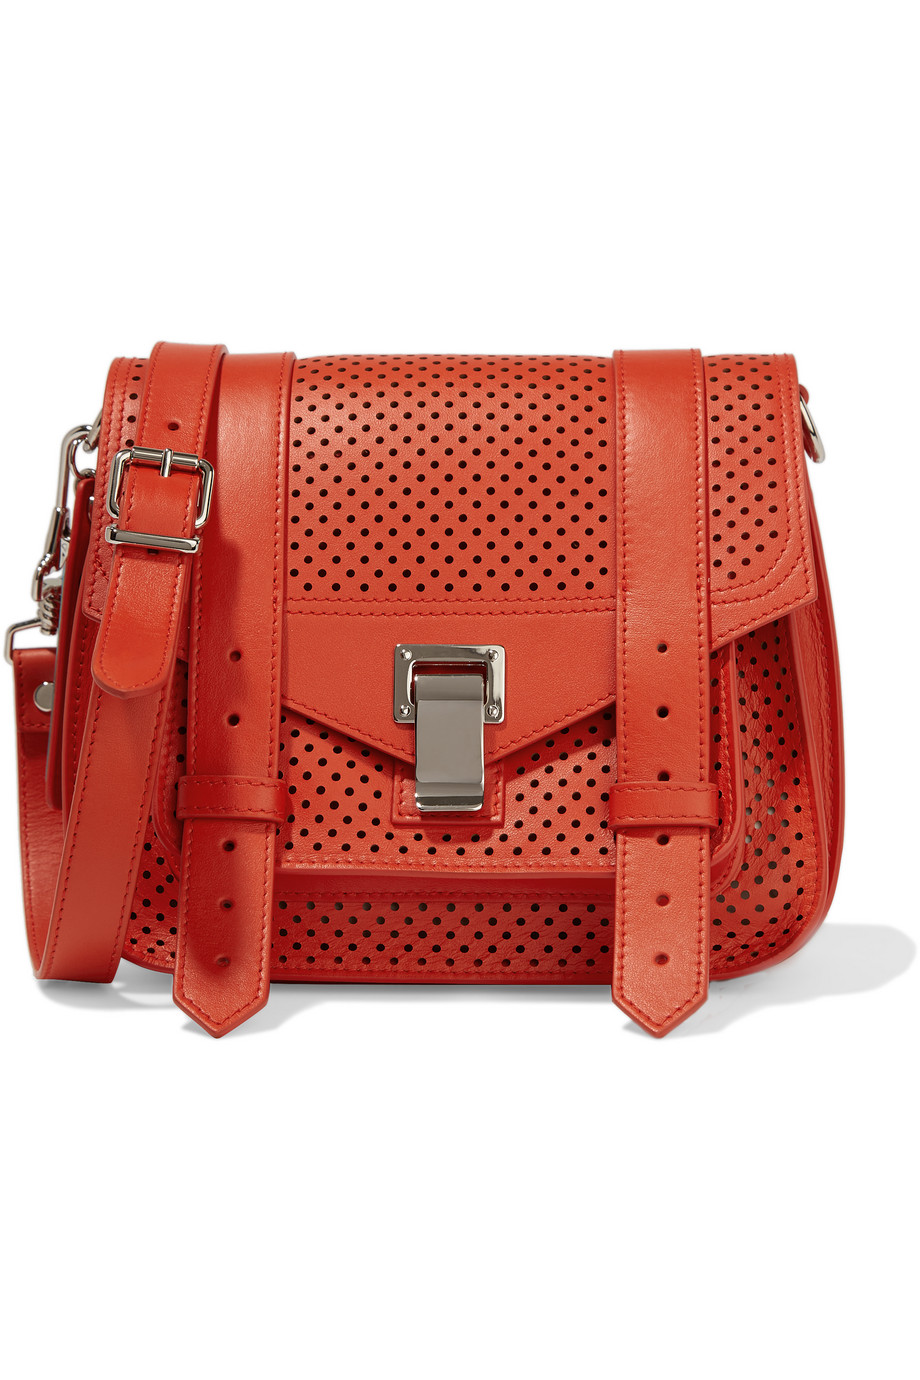 Proenza Schouler The PS1 Perforated Leather Satchel, Red, Women's